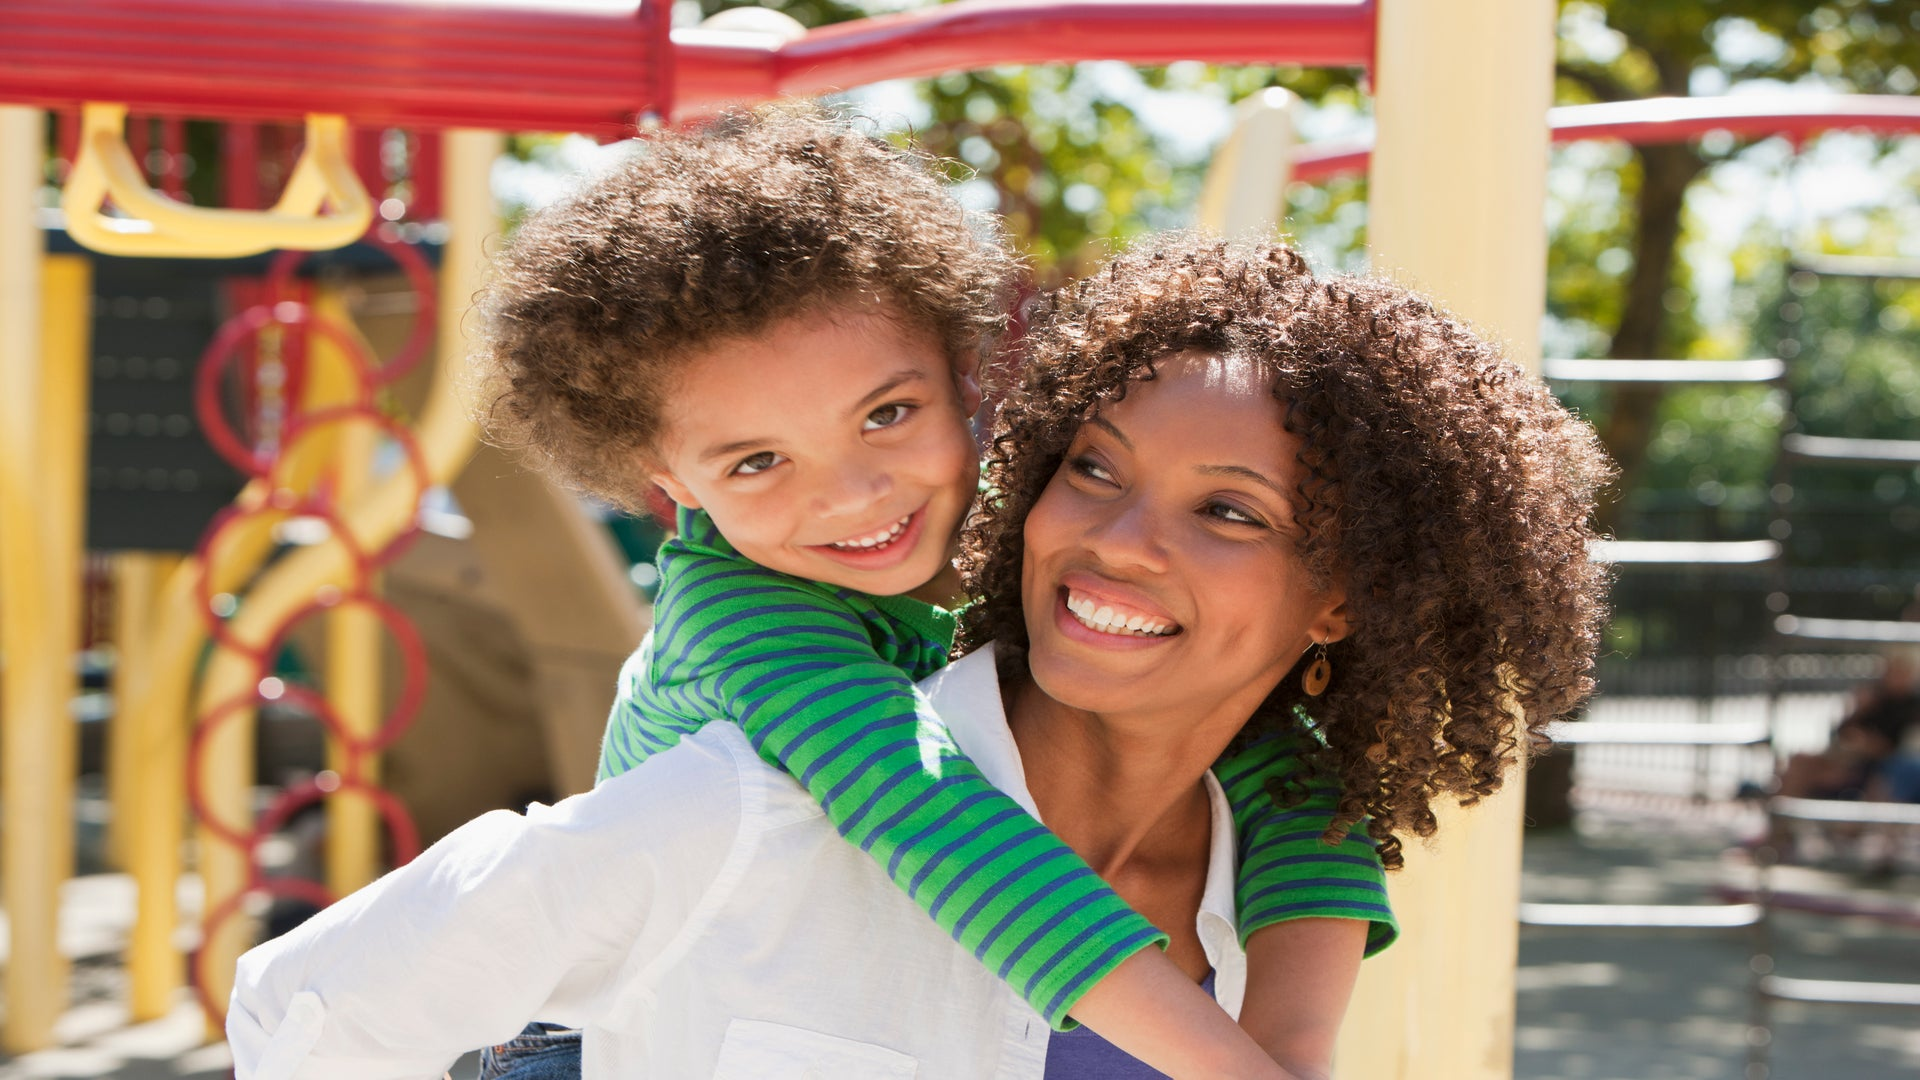 11 Types of Moms You Meet on The Playground